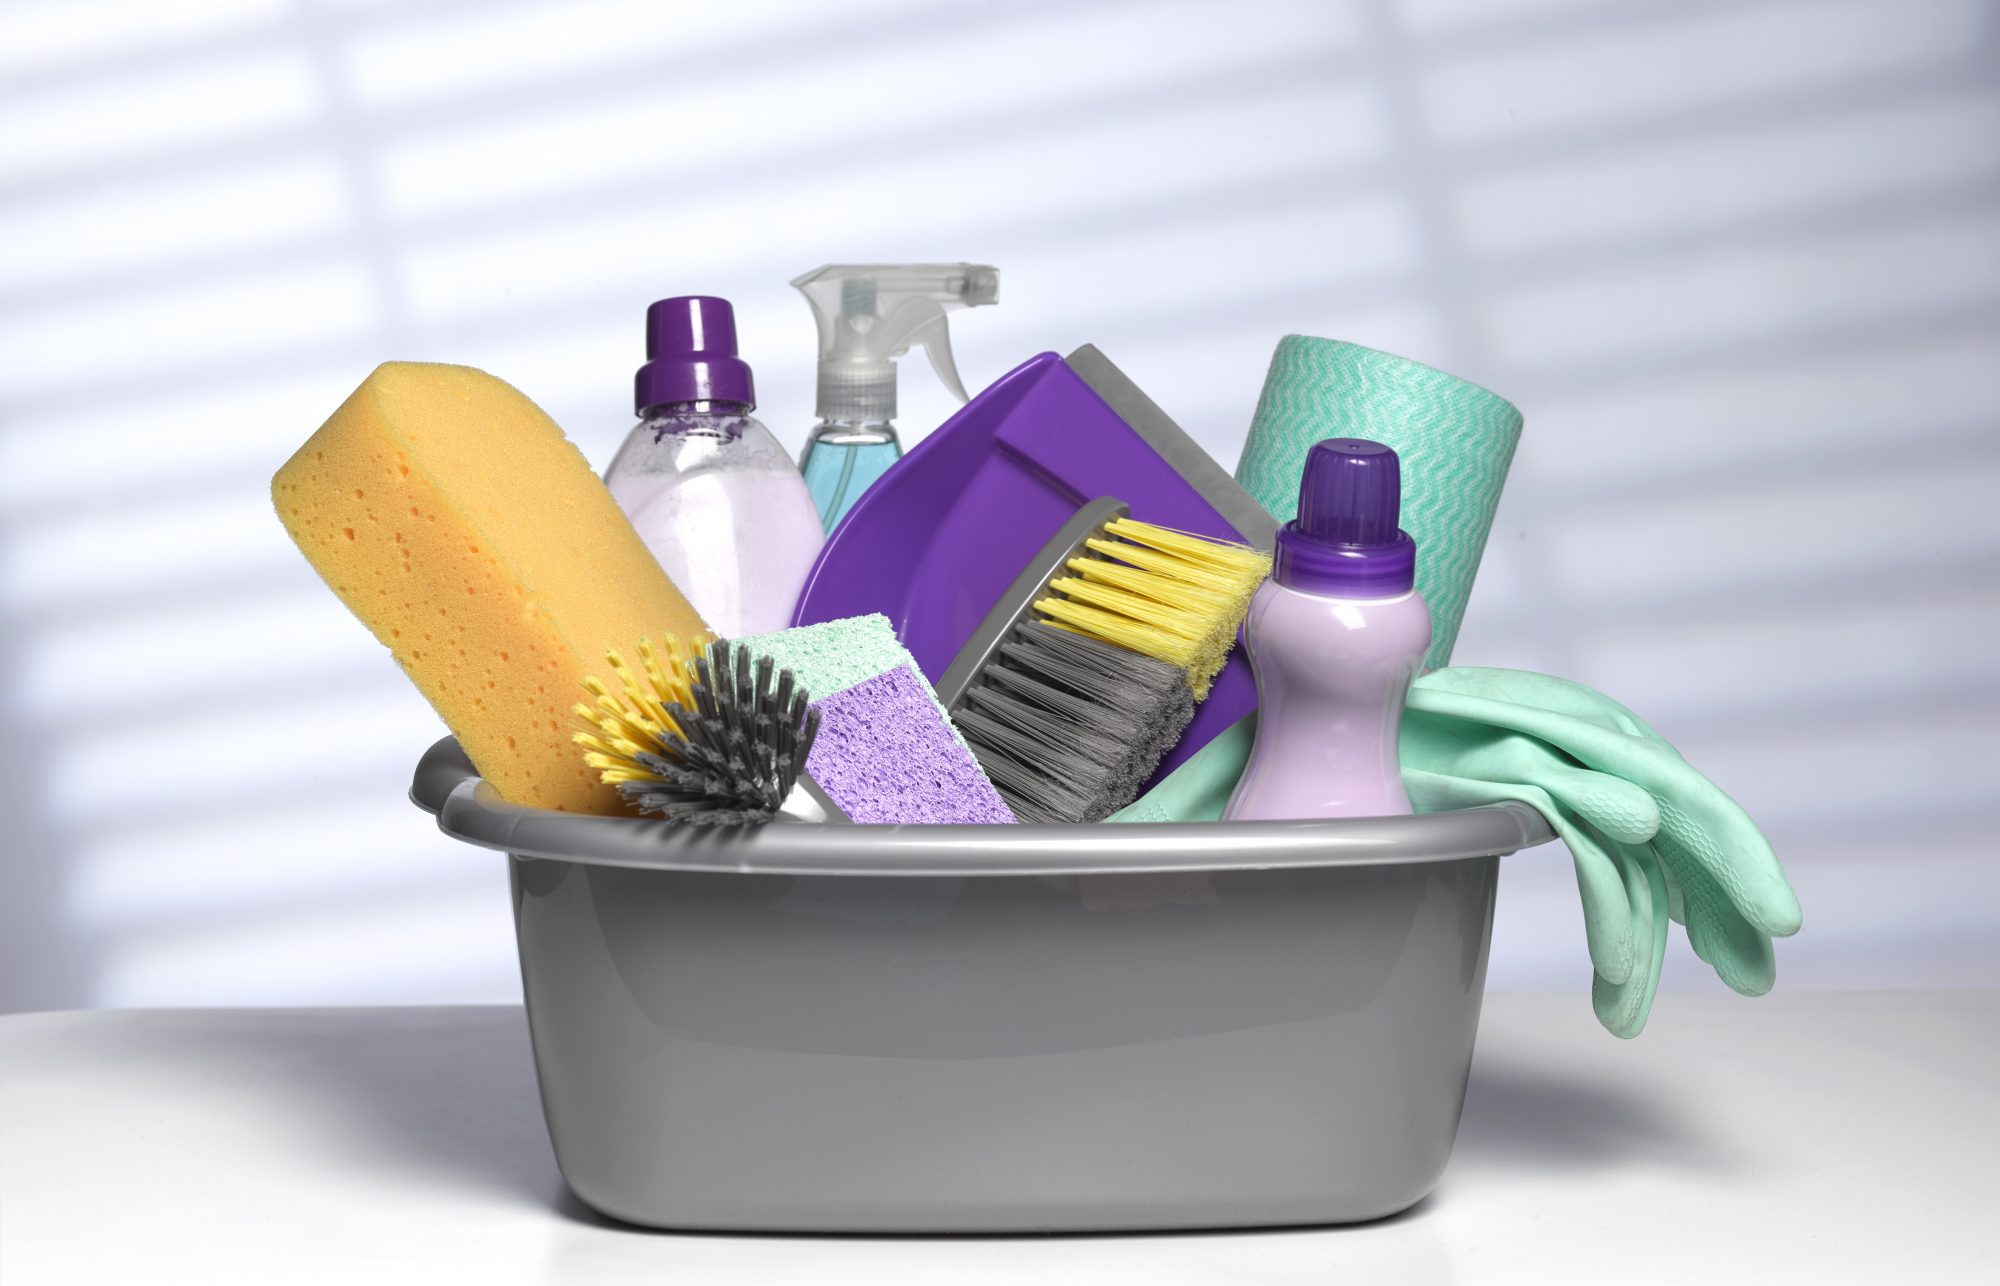 cleaning products in plastic tub